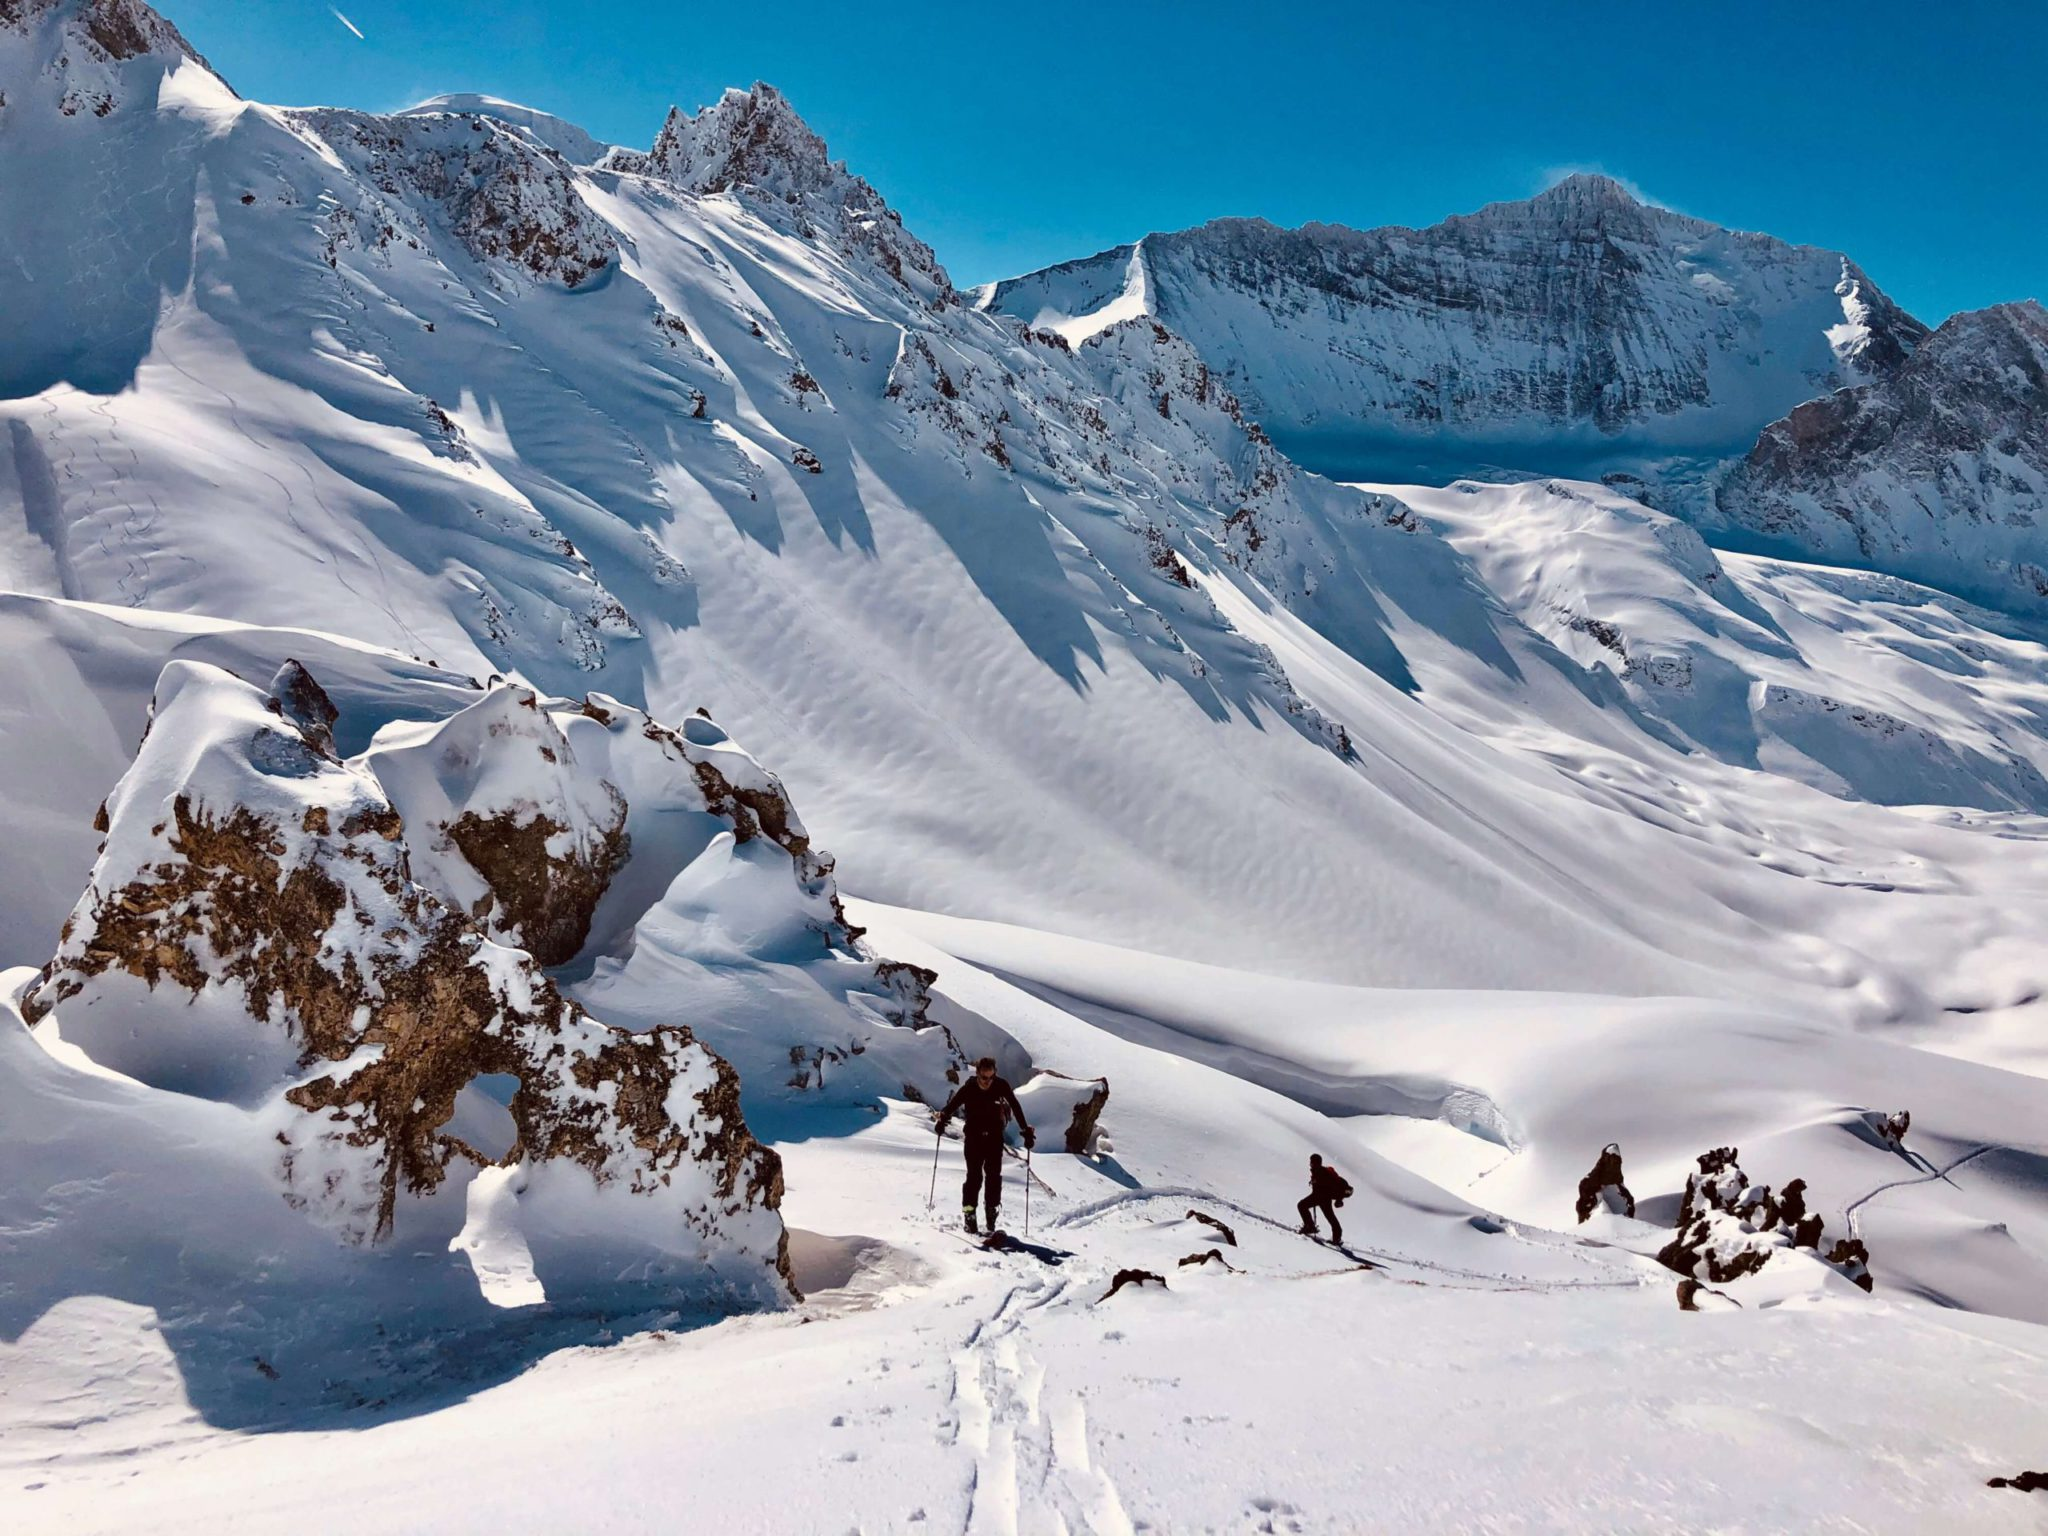 Val d'Isère ski touring lessons in France: Learn to ski tour